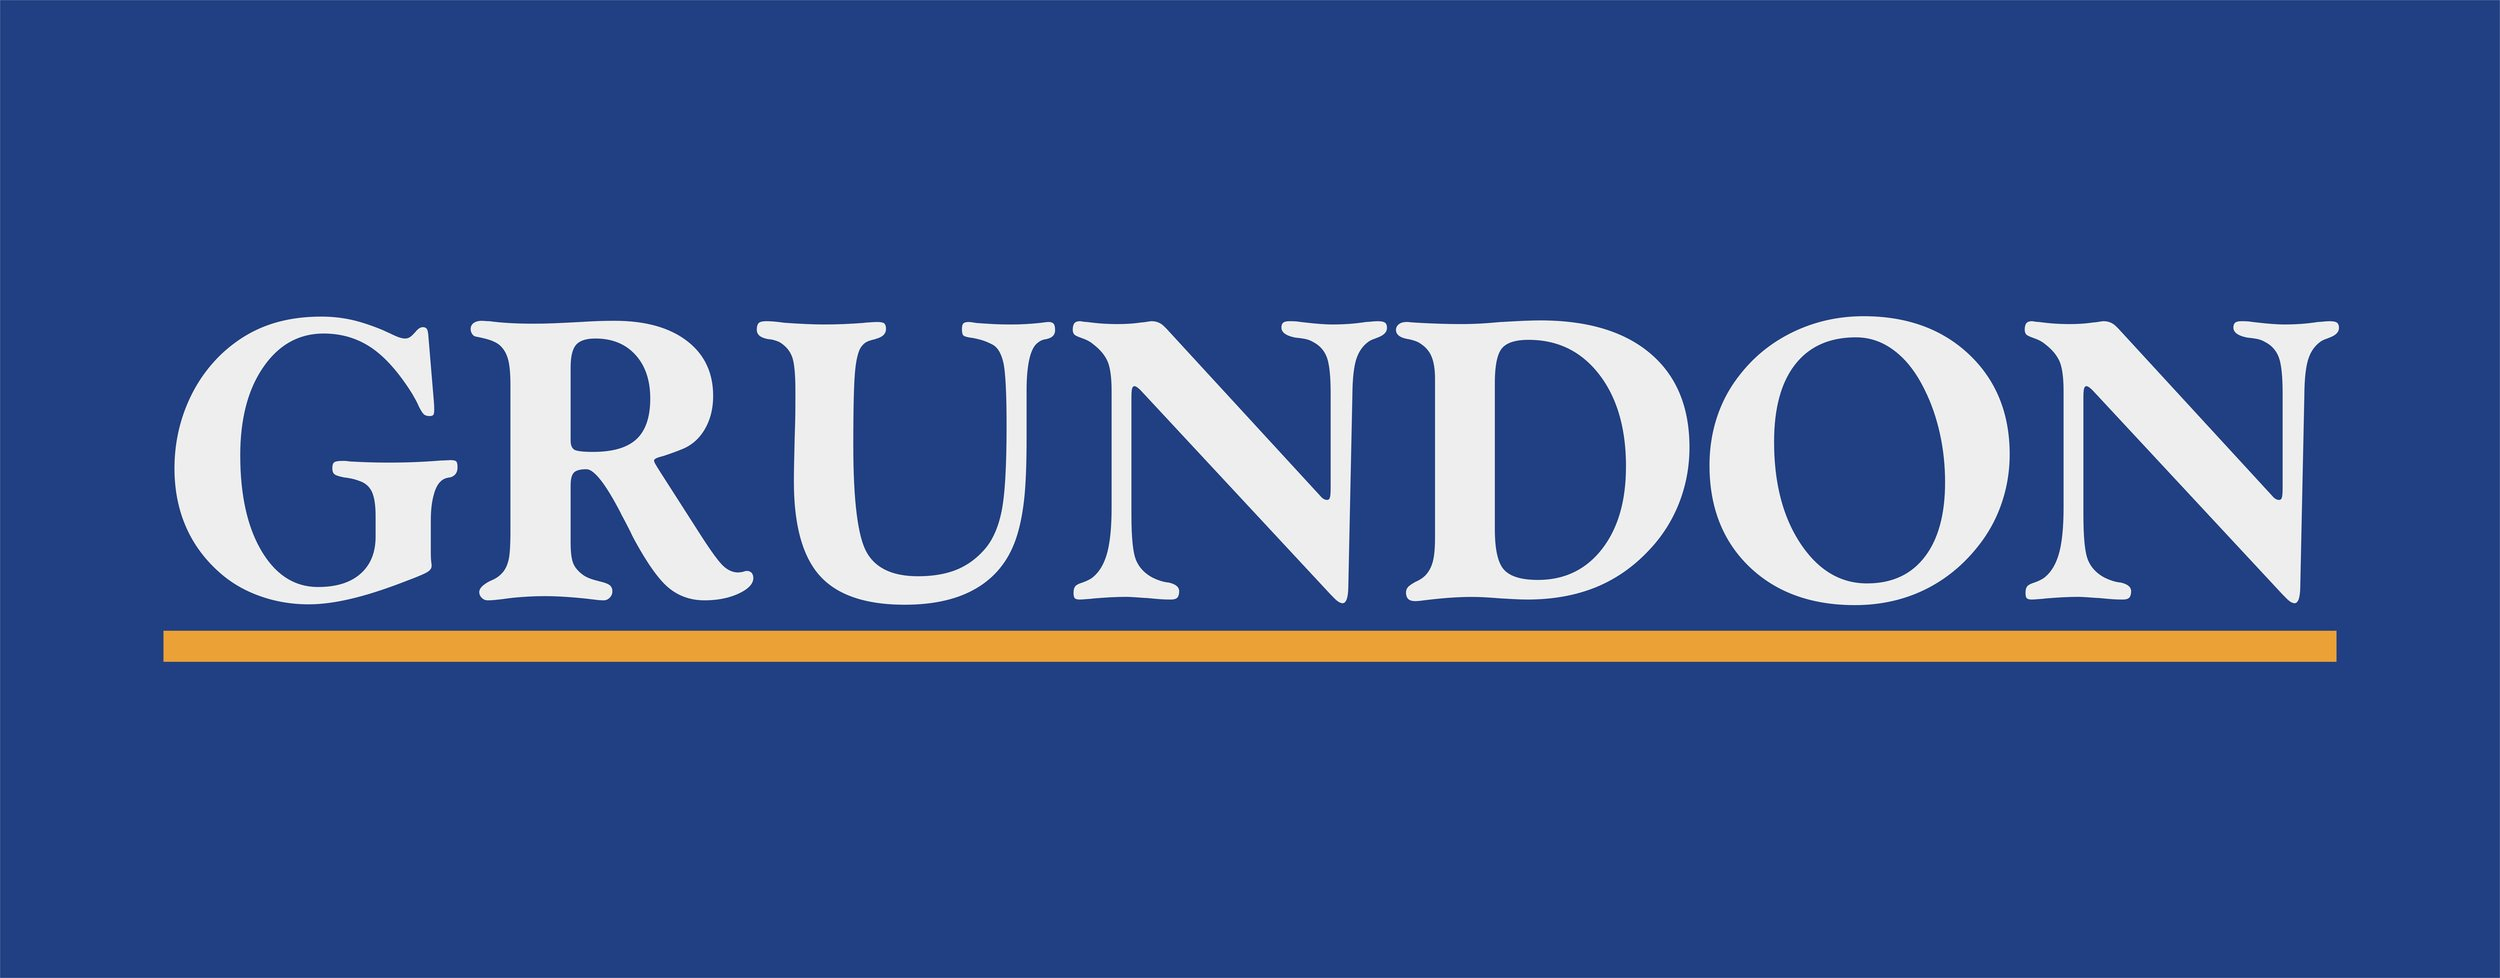 Grundon logo high res.jpg